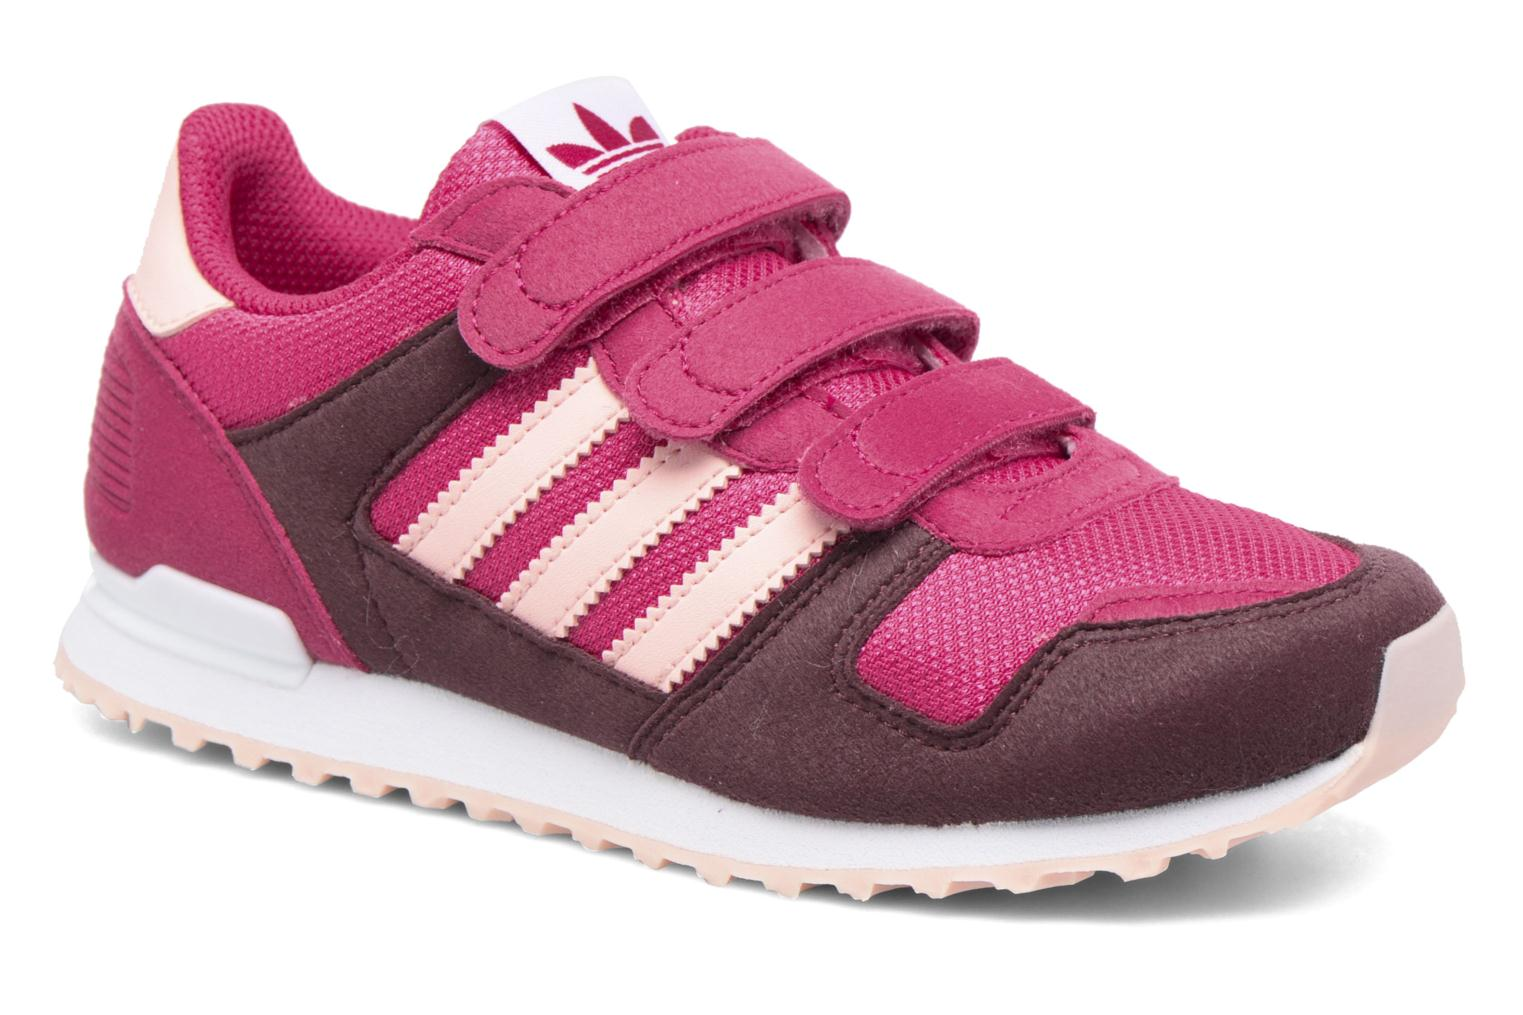 Zx 700 Cf C Rosecl/Brucor/Lidevi